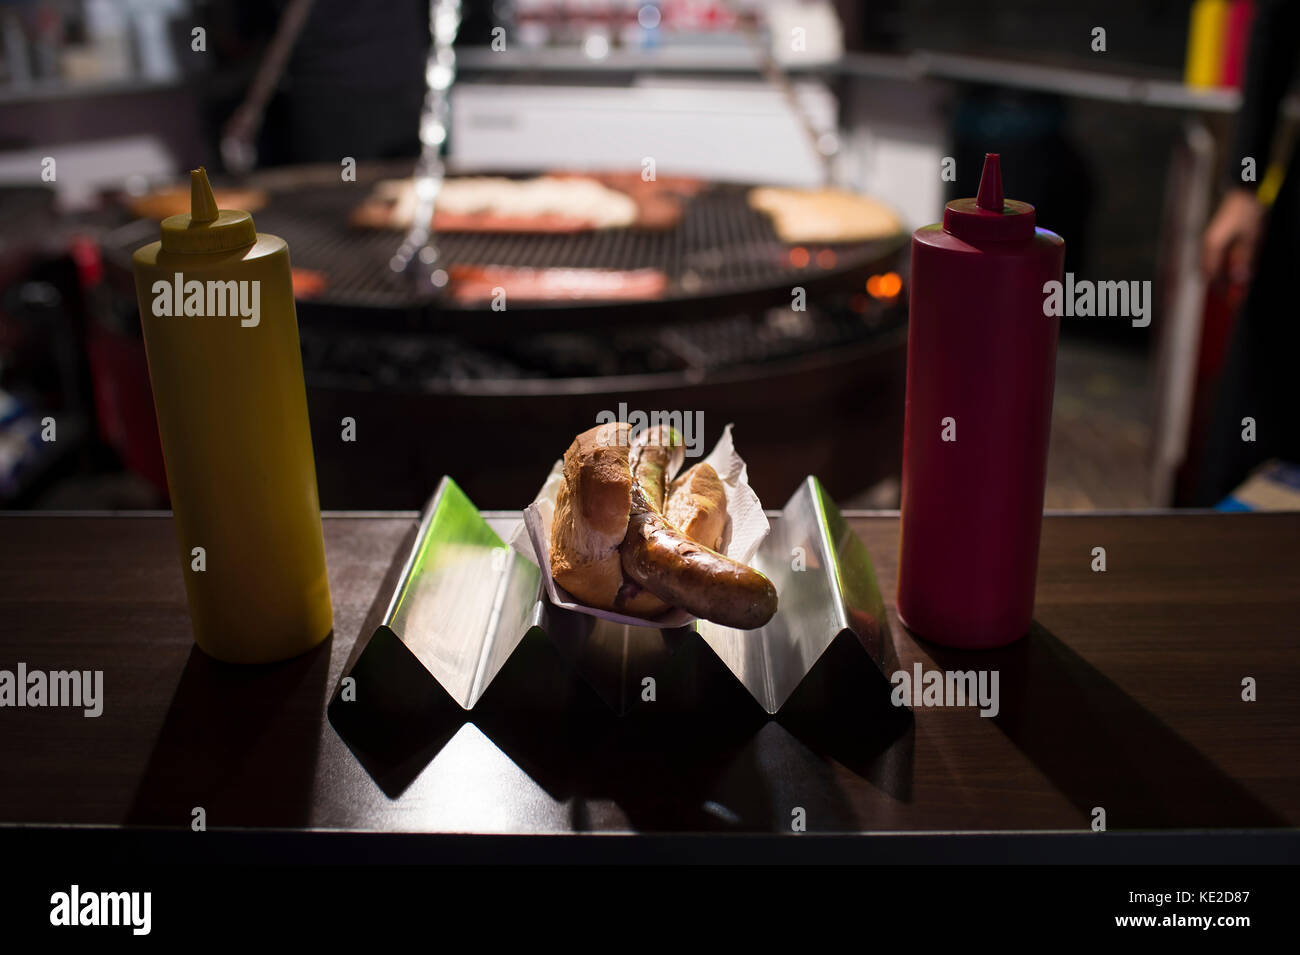 Sausage in the bread roll in the evening in the sausage stand - Stock Image